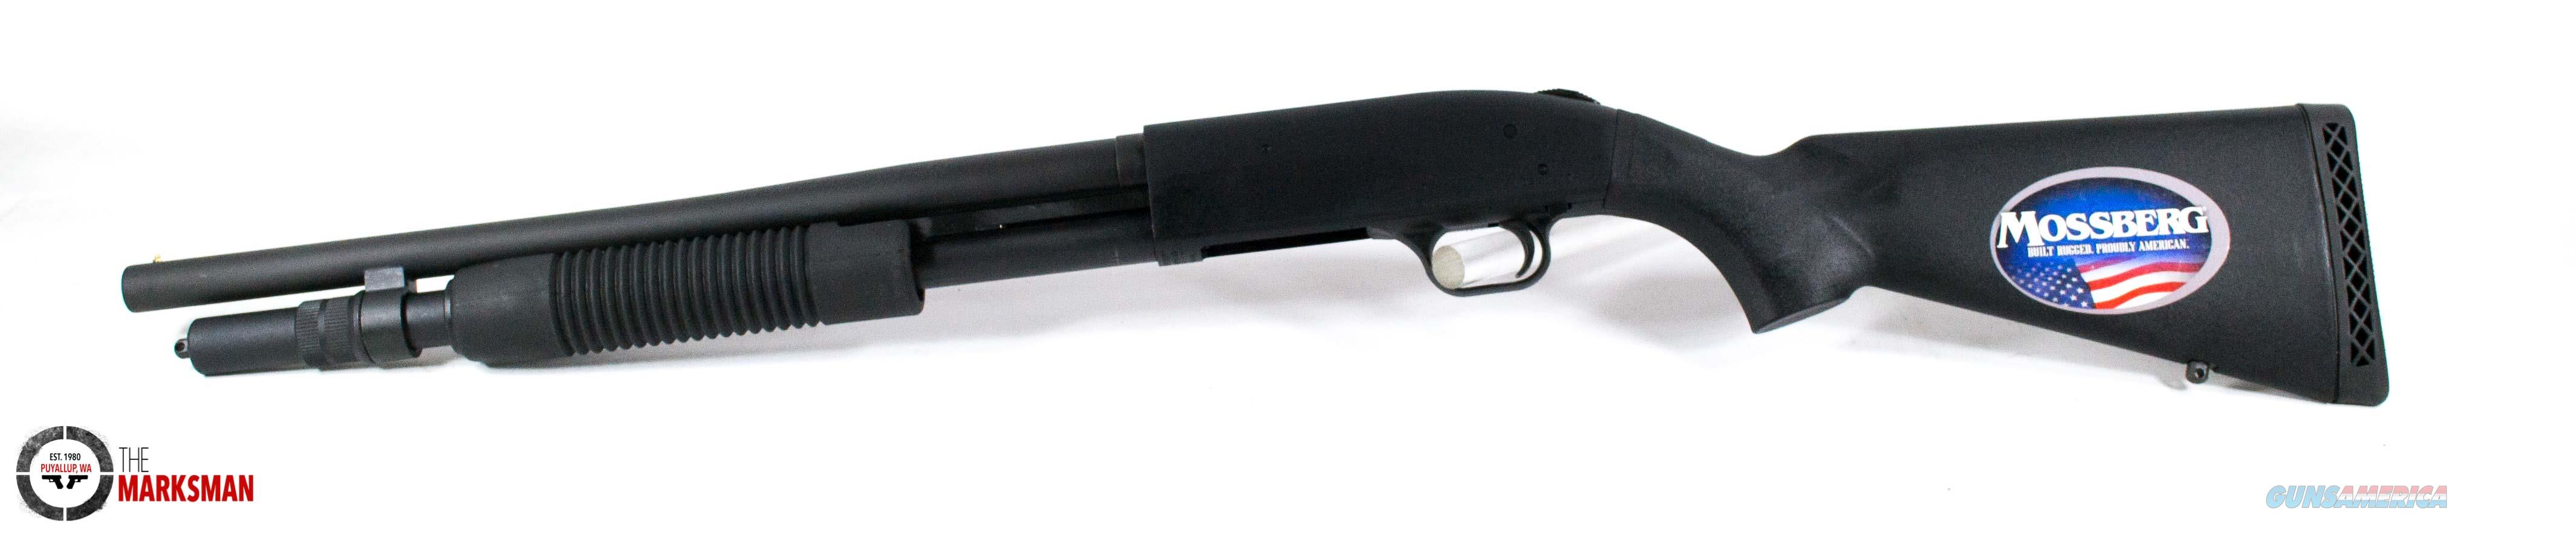 Mossberg 590 12 Gauge NEW 7 Shot 50778  Guns > Shotguns > Mossberg Shotguns > Pump > Tactical